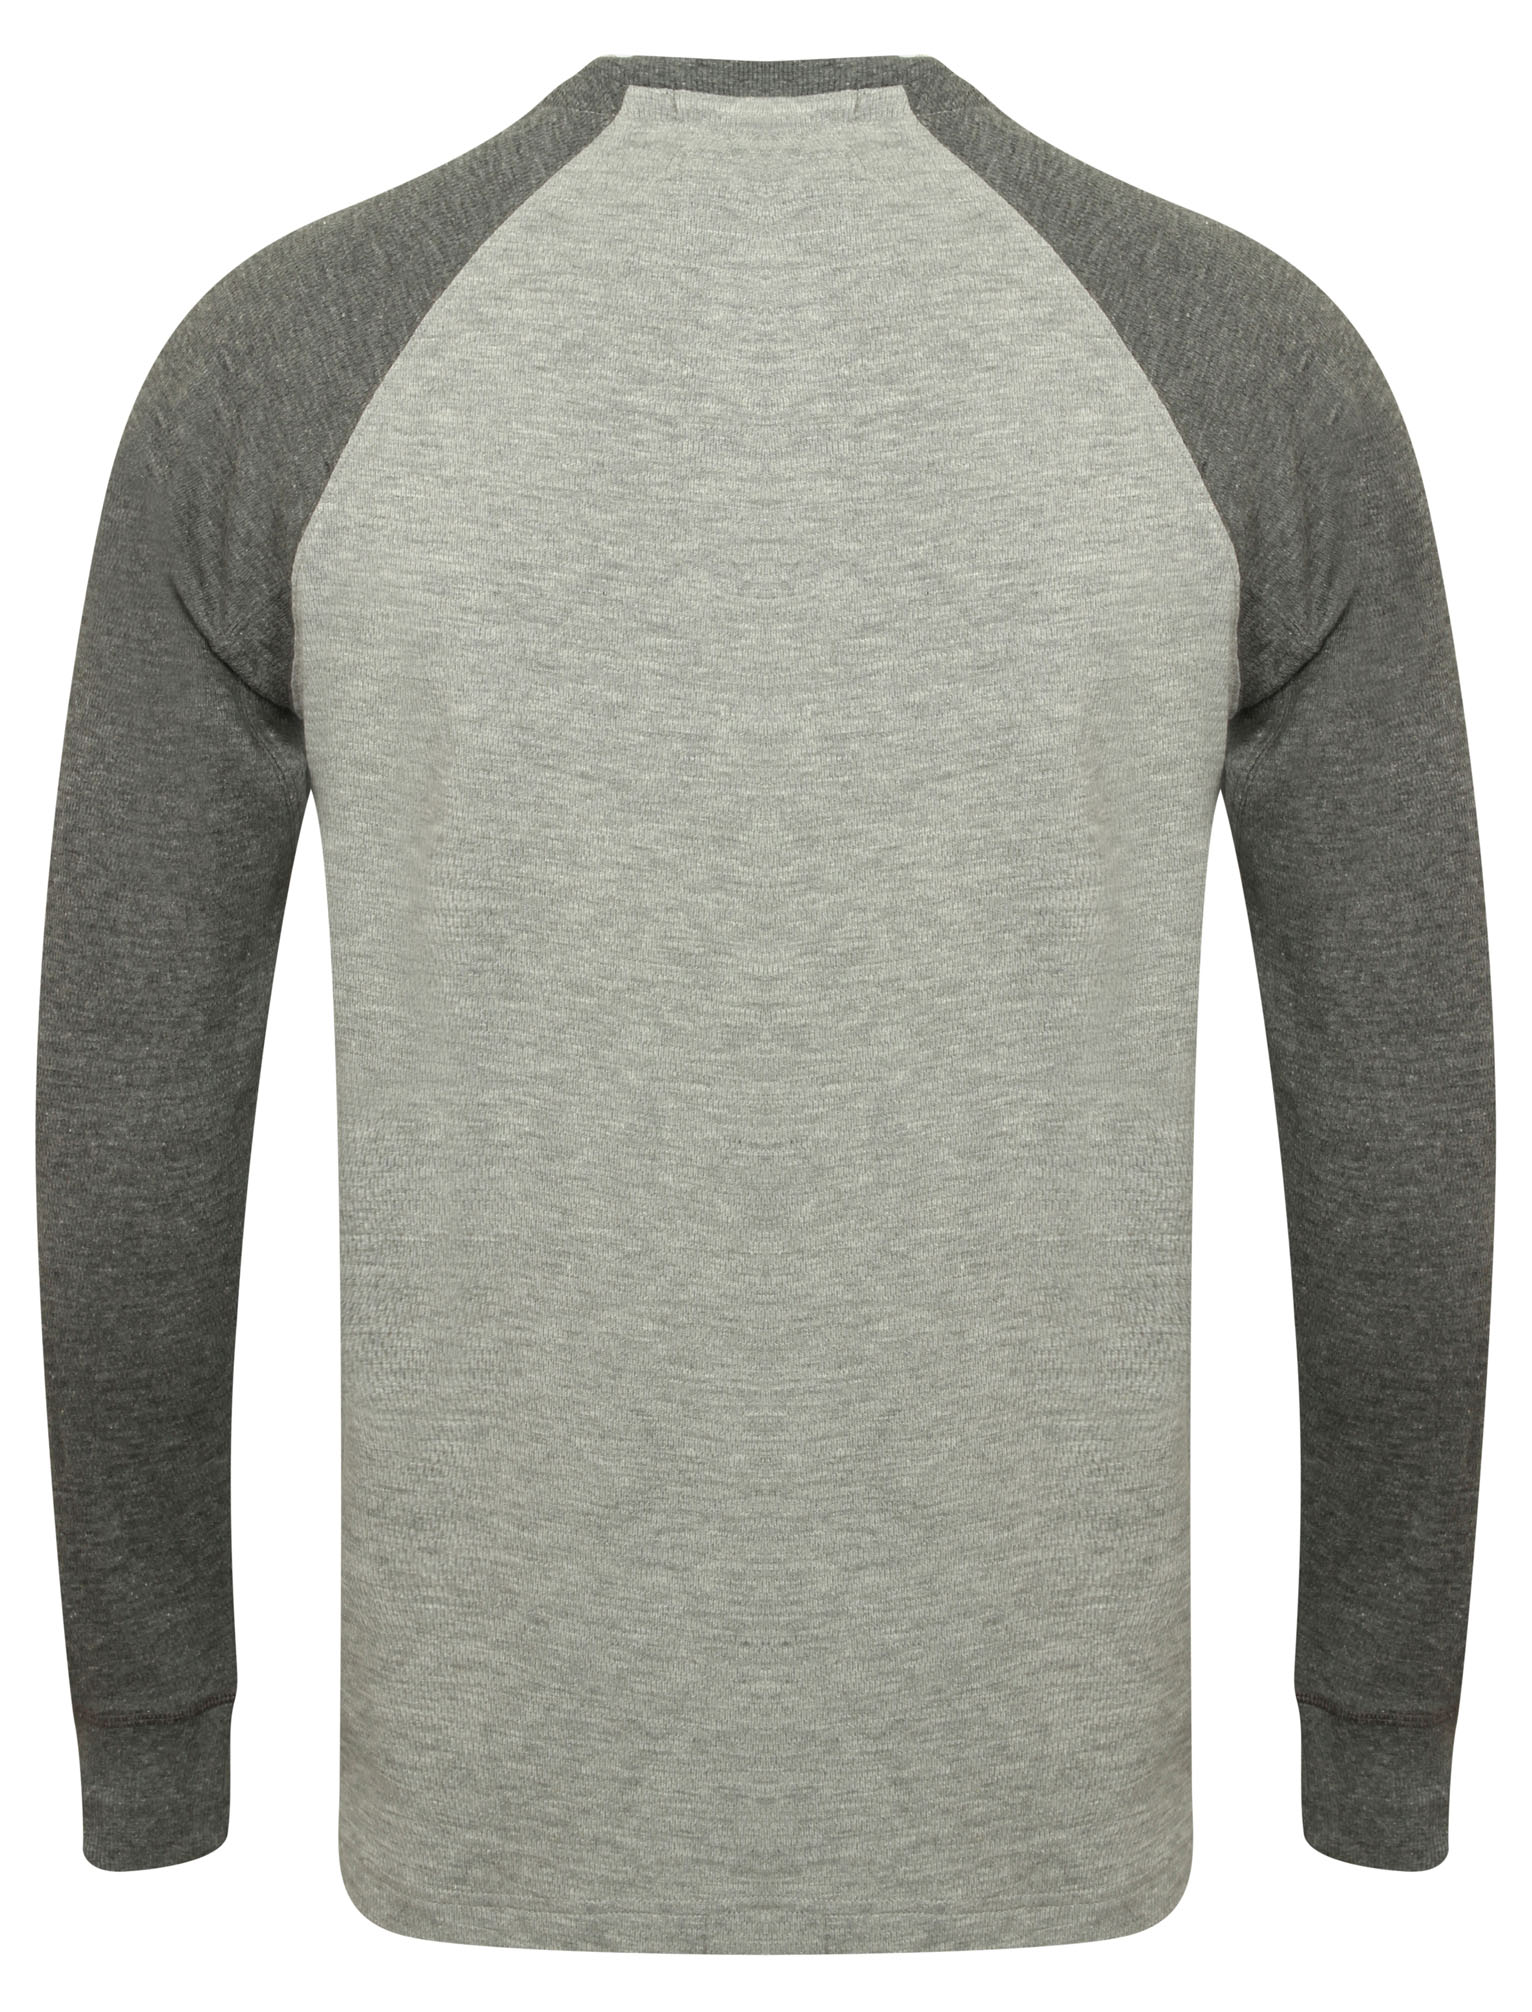 New-Mens-Tokyo-Laundry-Branded-Soft-Jersey-Long-Sleeve-Tops-T-Shirts-Size-S-XL thumbnail 7